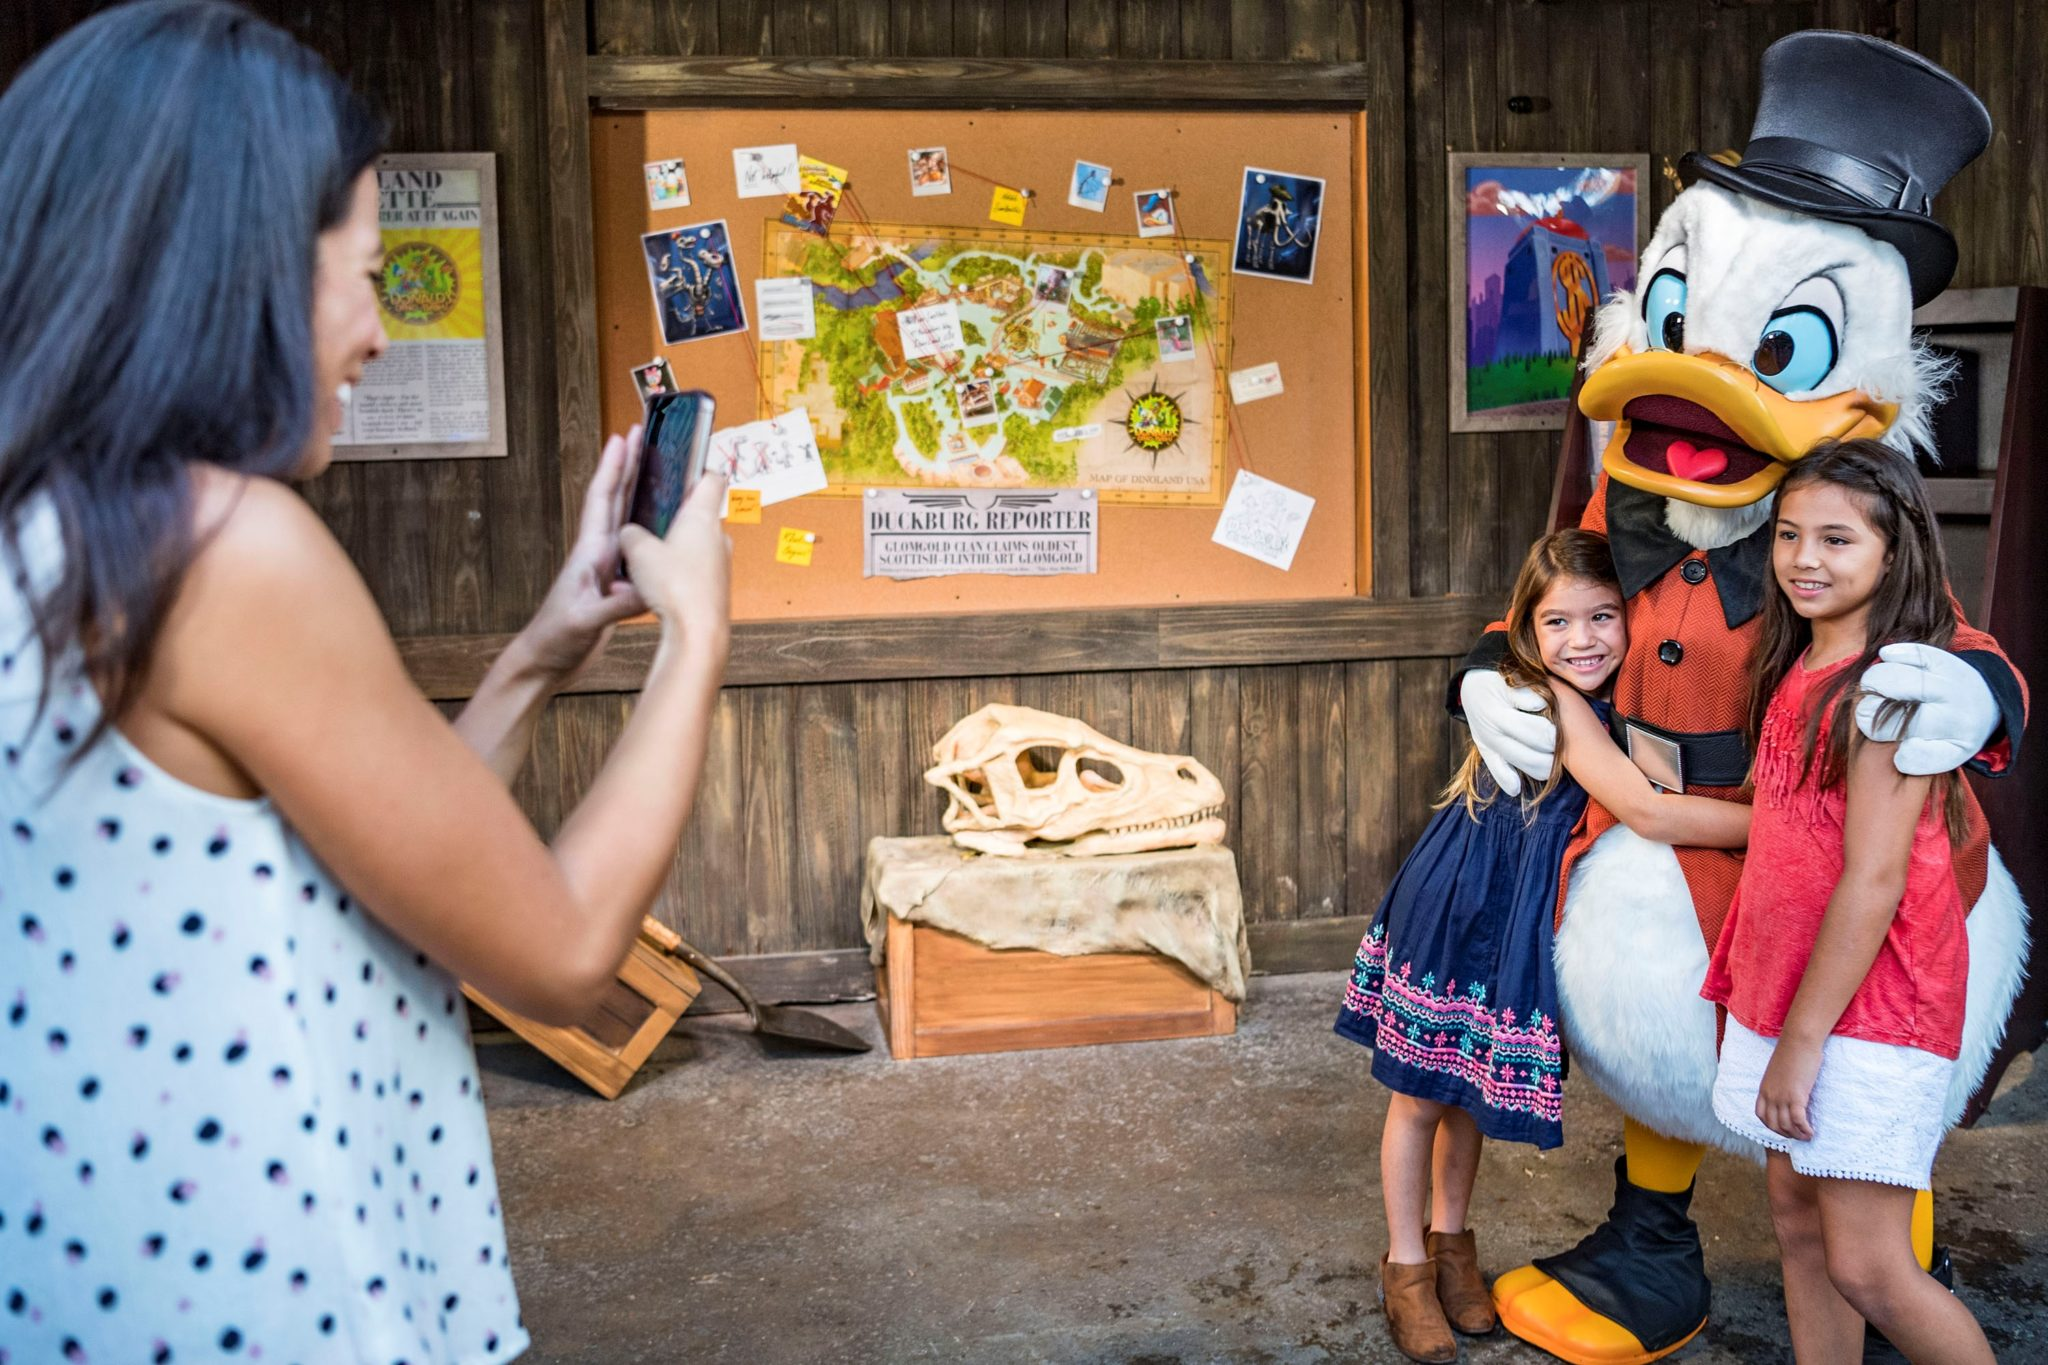 Donald's Dino-Bash! Brings Dino-tastic Energy to Disney's Animal Kingdom